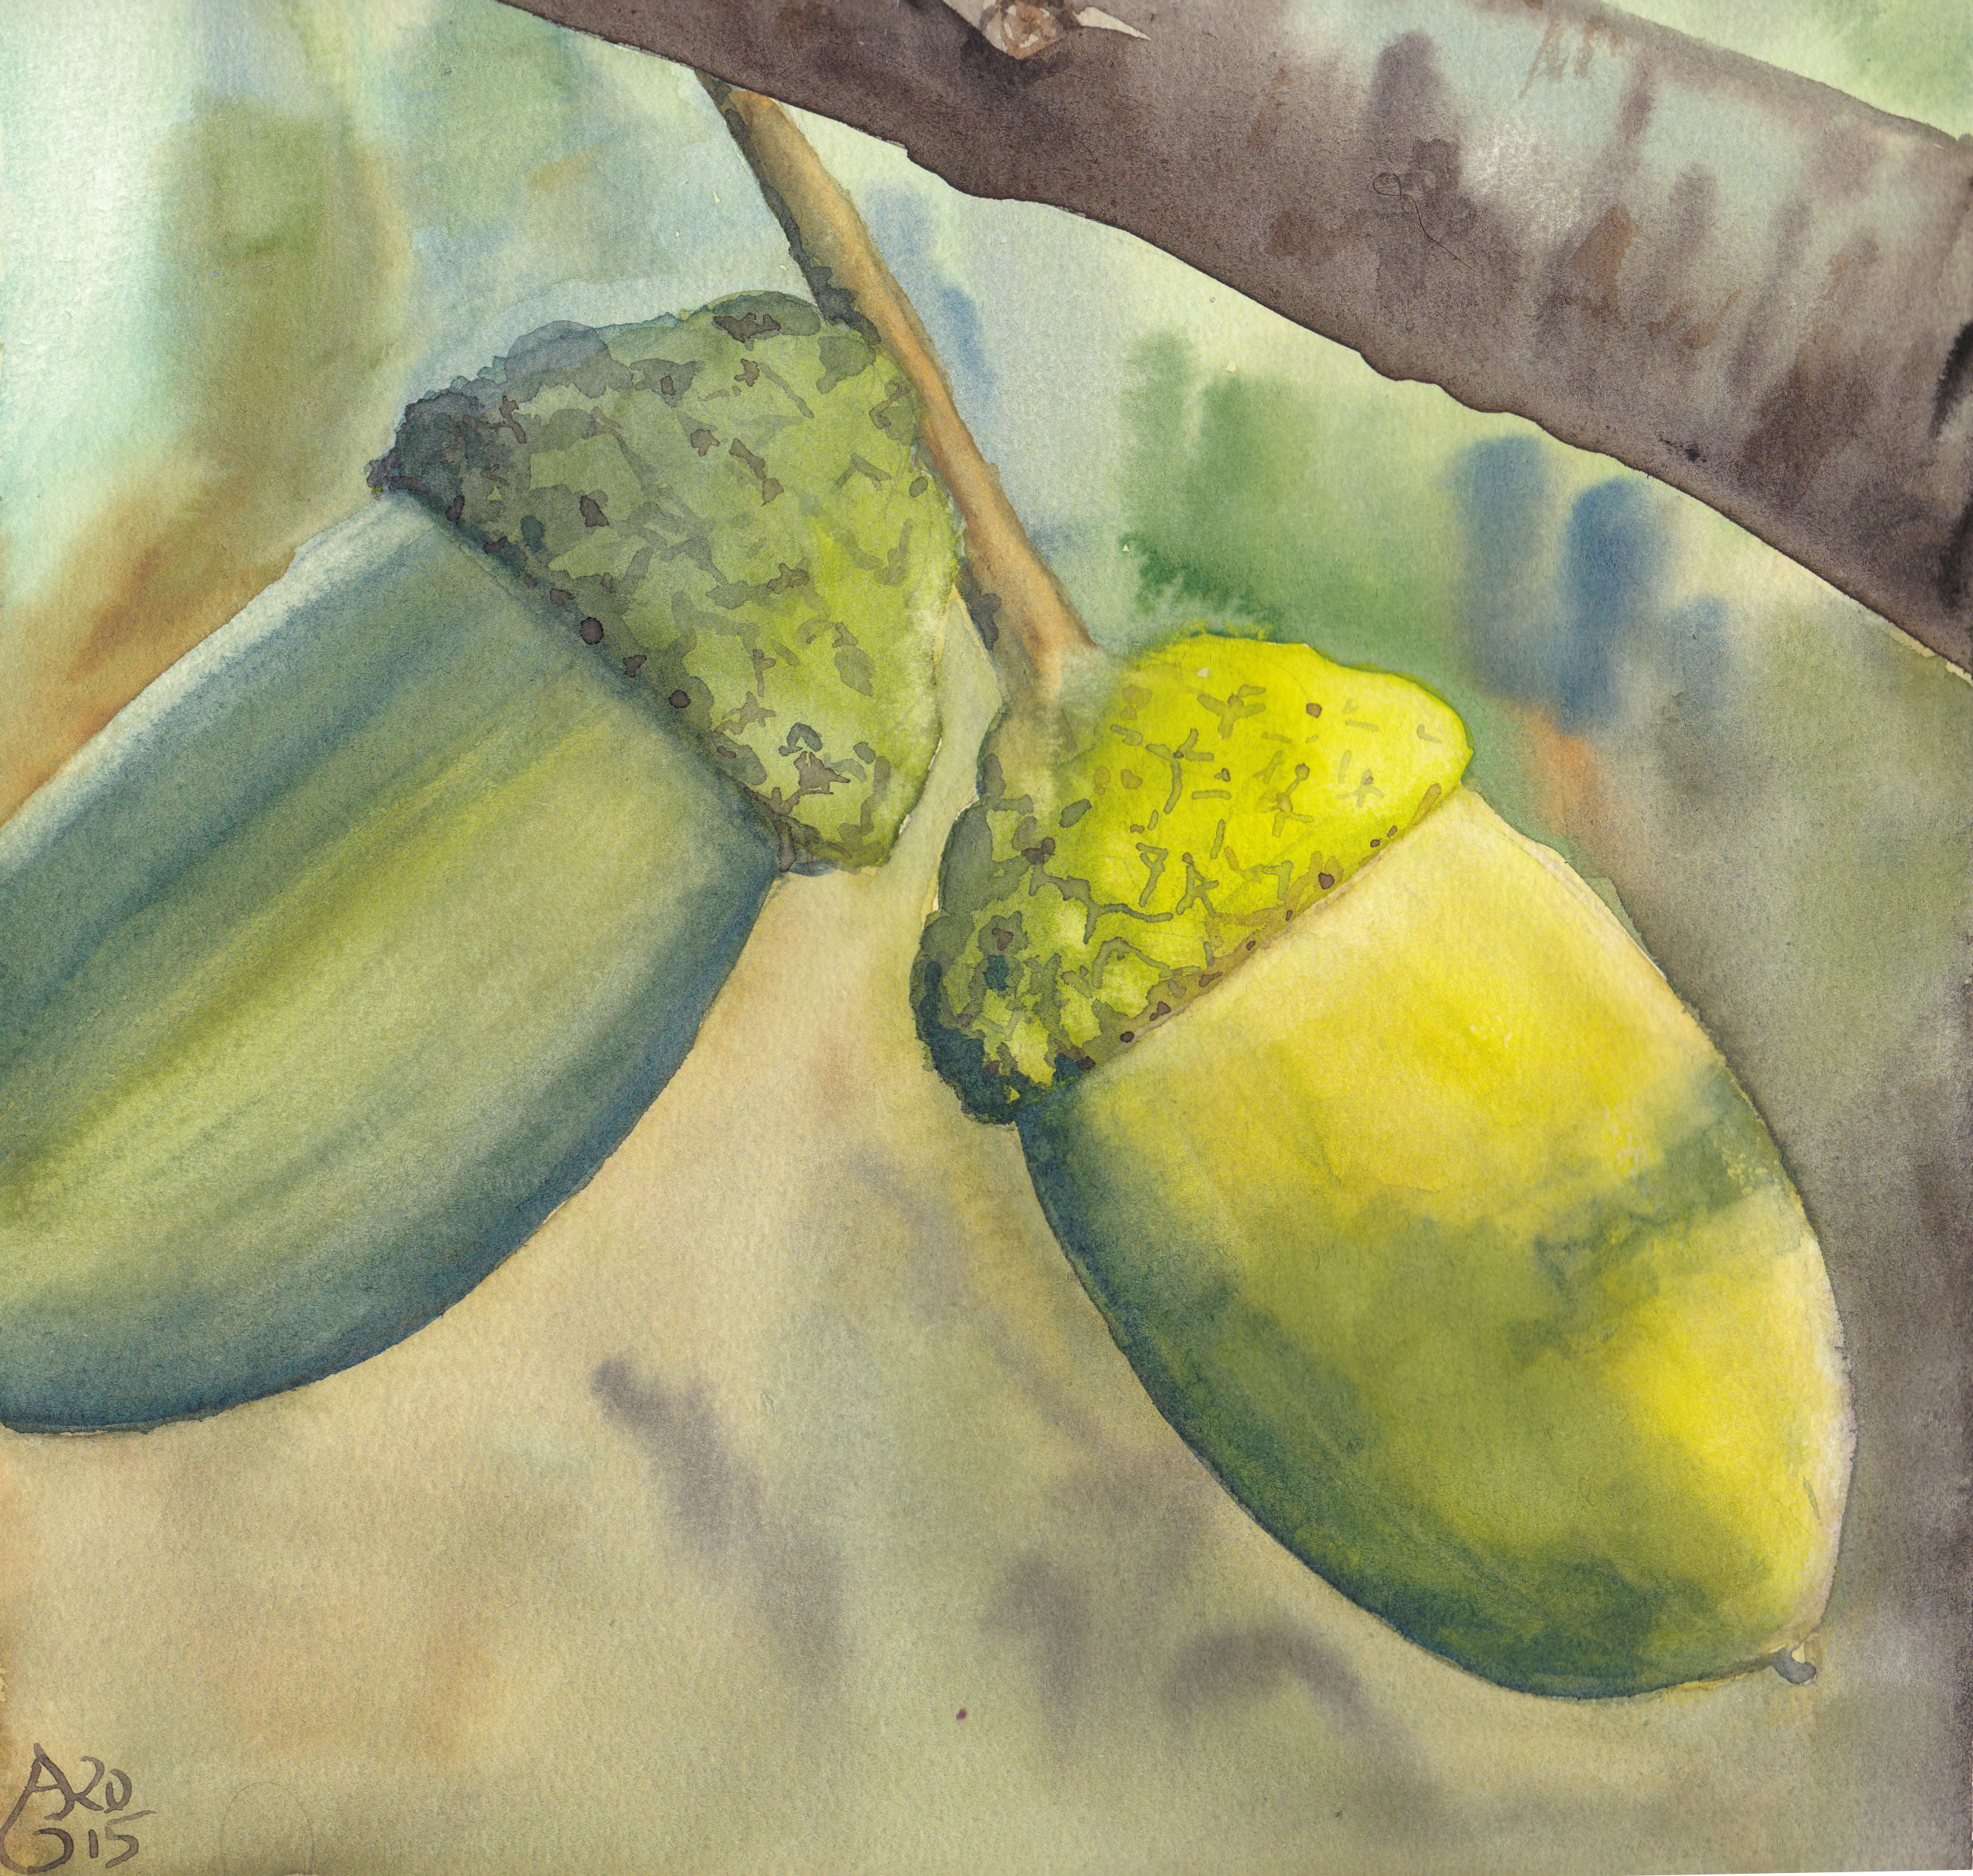 "Acorns. (Eicheln) Aquarell auf 200g/m mattem Bütten-Aquarellkarton, 22,5 x 22,5 cm. 80 € (gerahmt). Watercolours on mould-made 200 gsm watercolour board, 8.9"" x 8.9"". $ 90 (framed)."